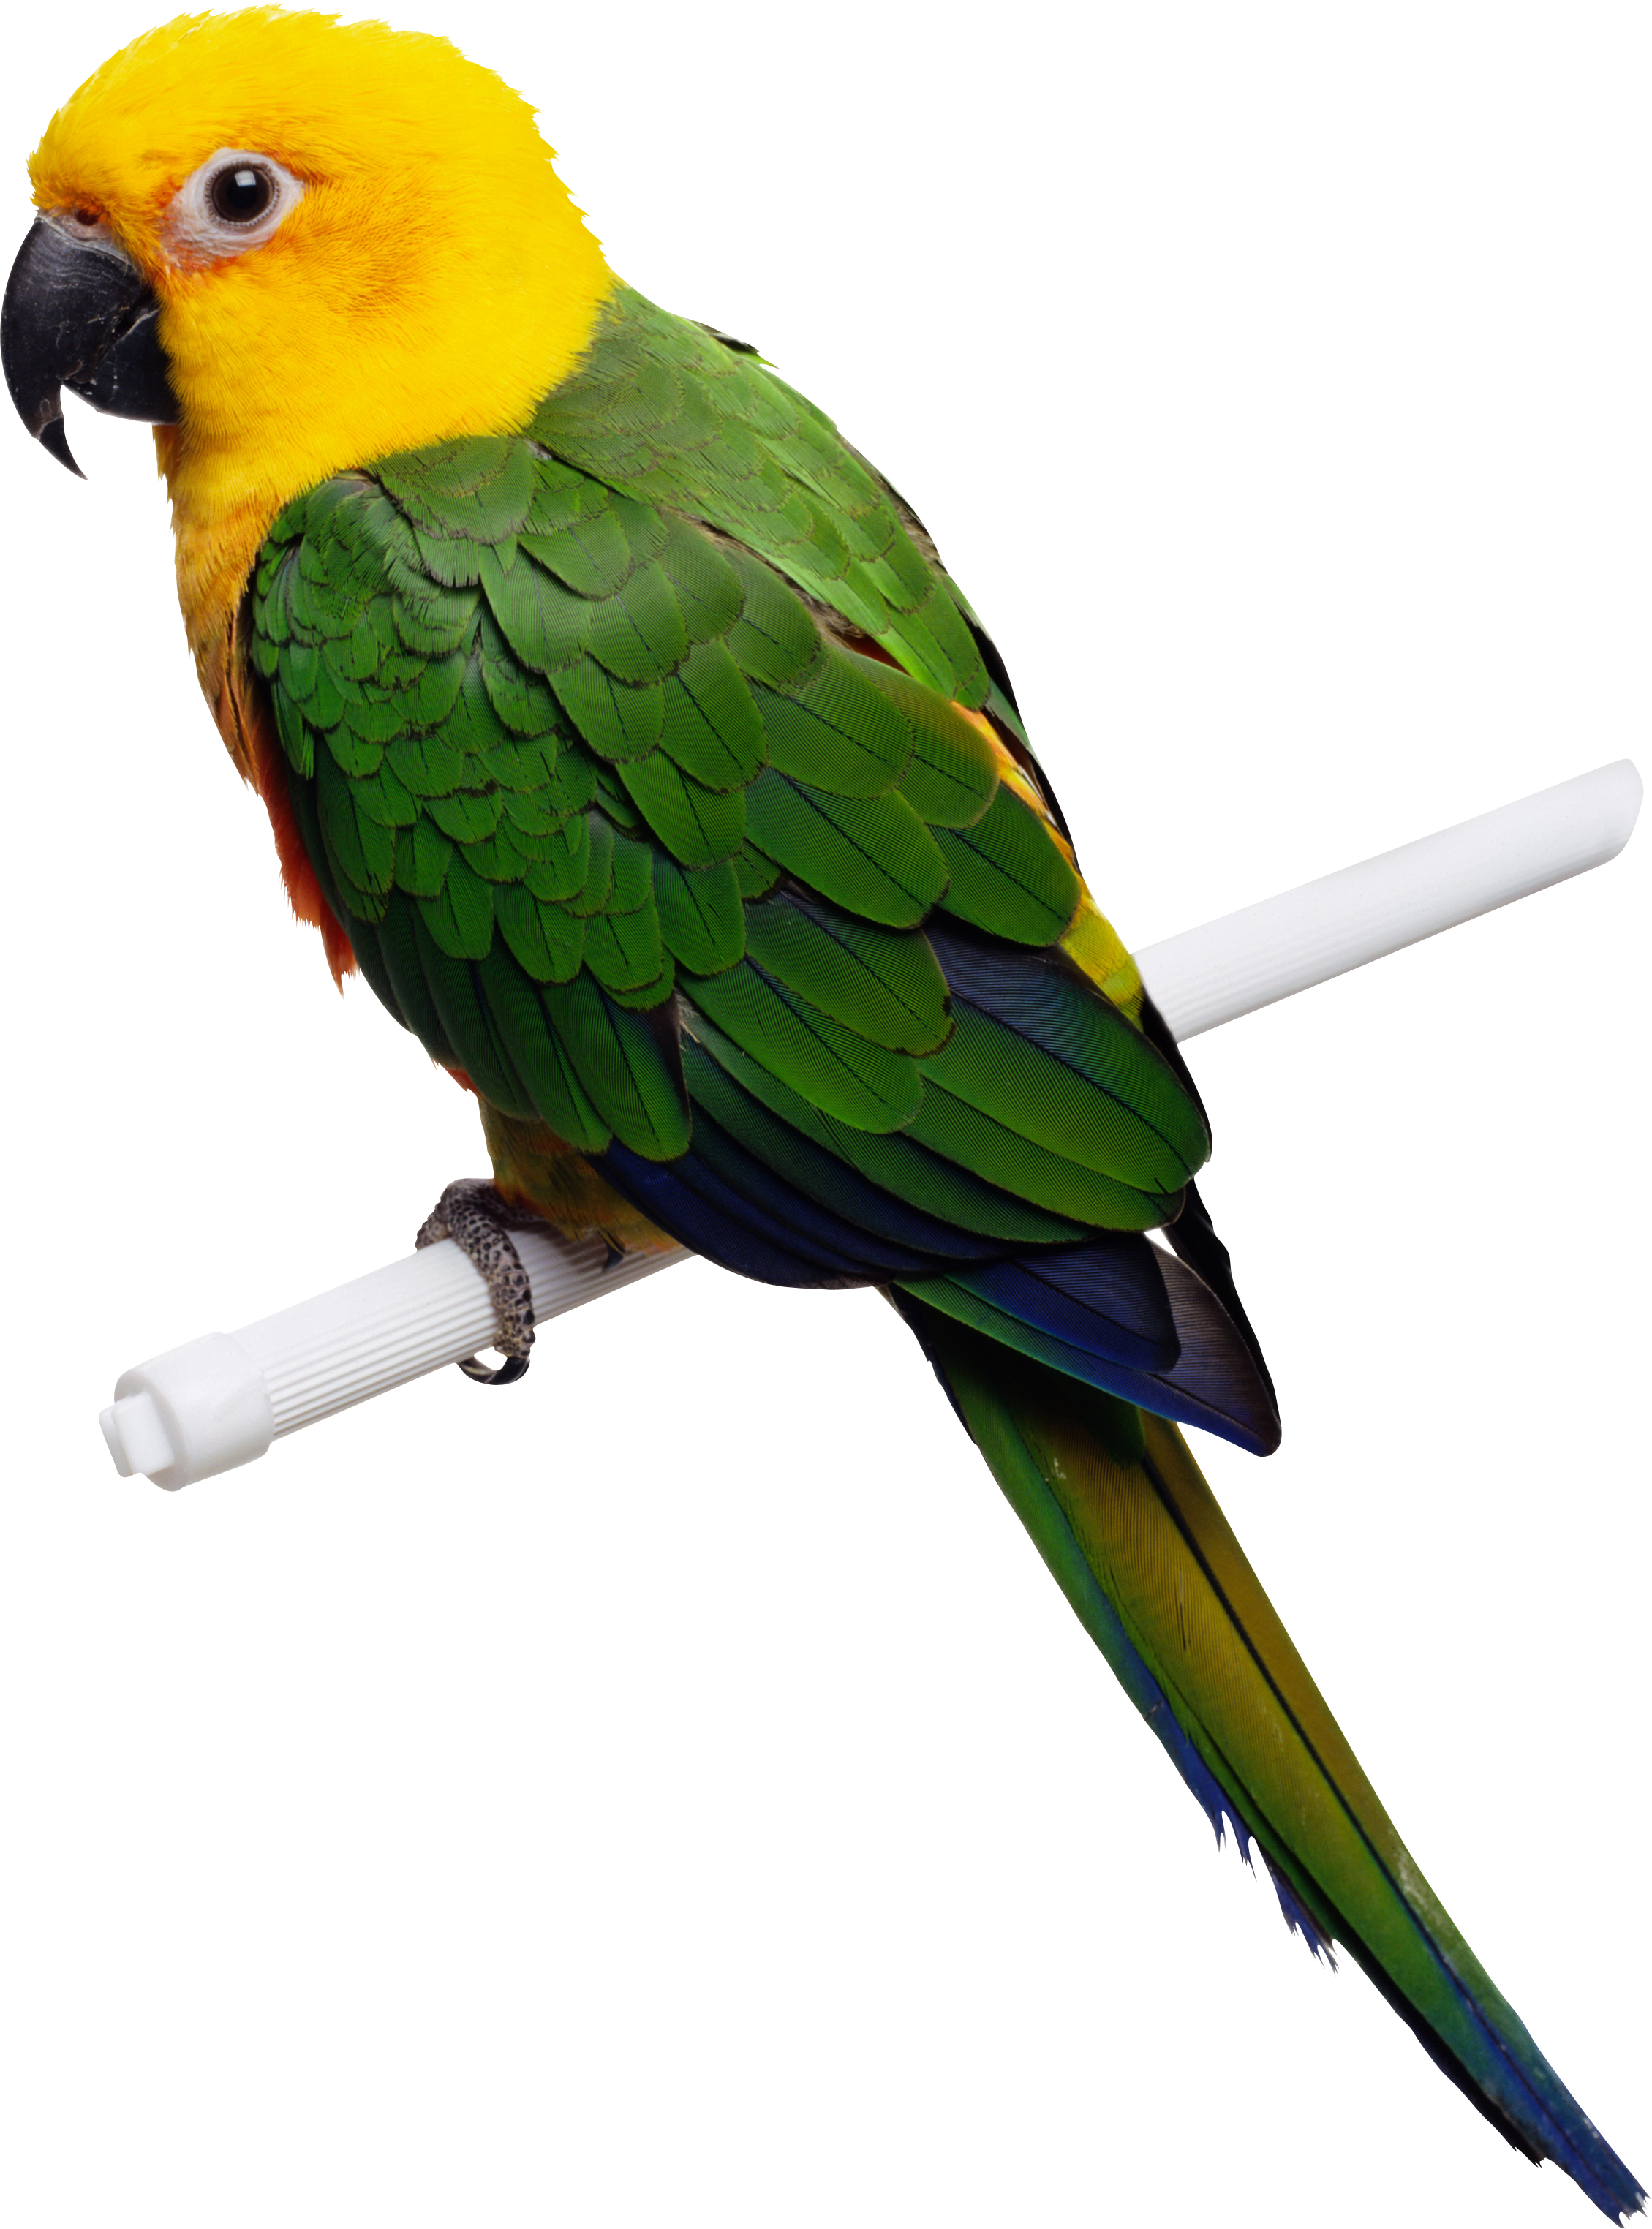 Free download png image. Parrot images pictures greenyellow